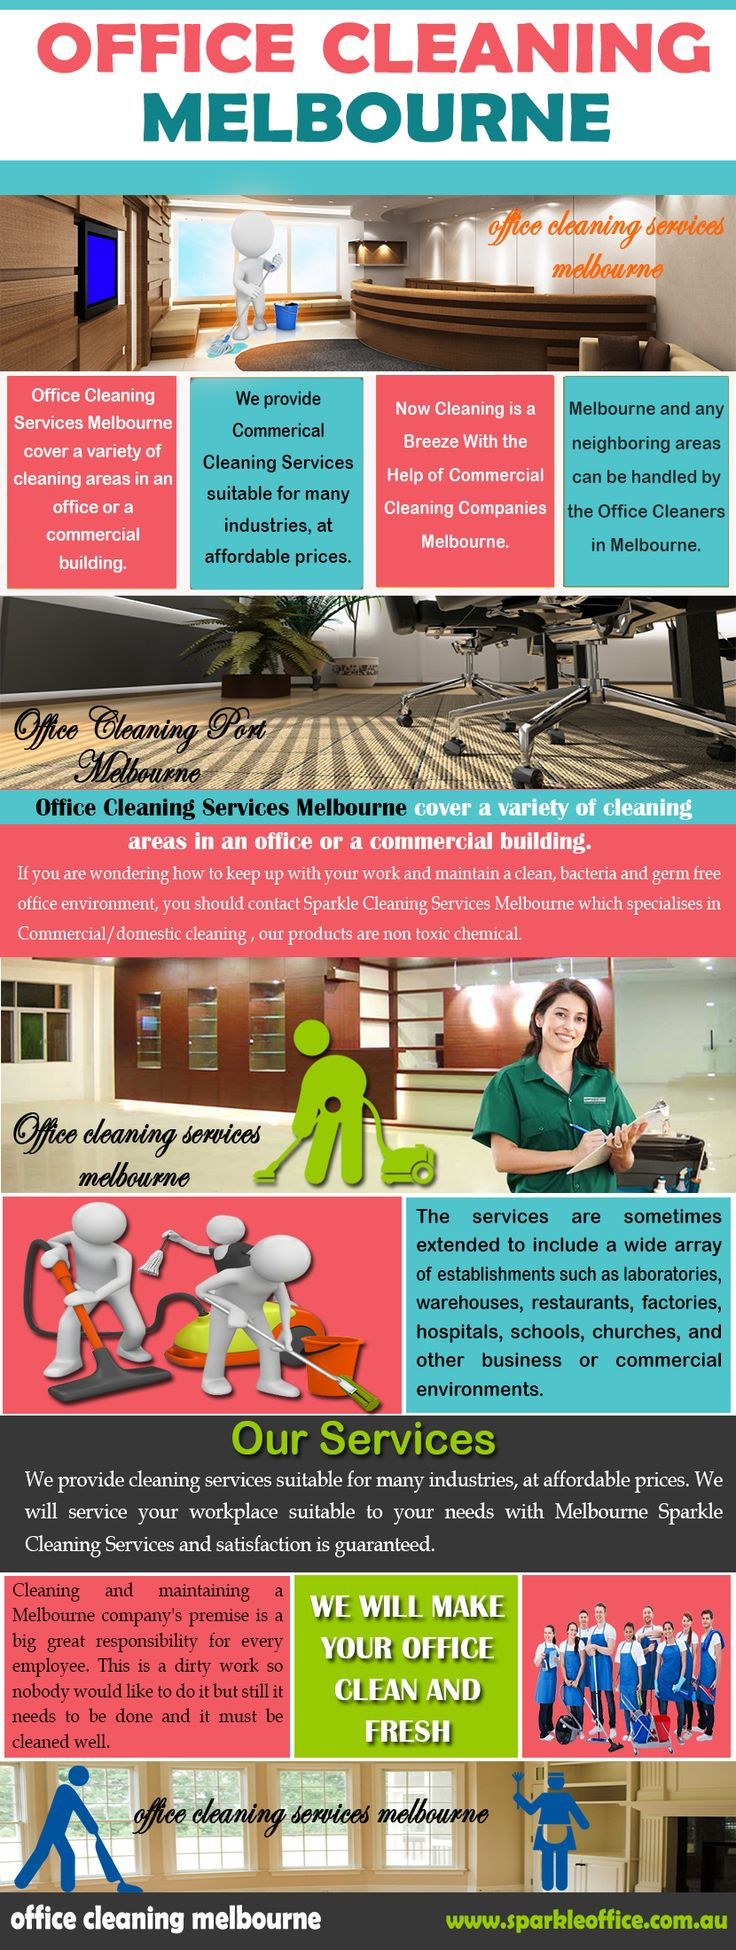 Check this link right here http://www.sparkleoffice.com.au/ for more information on Office Cleaning Melbourne. Professional Office Cleaning Melbourne services can keep your office looking clean, tidy, and sparkling. Follow us http://go.favecentral.com/11490040